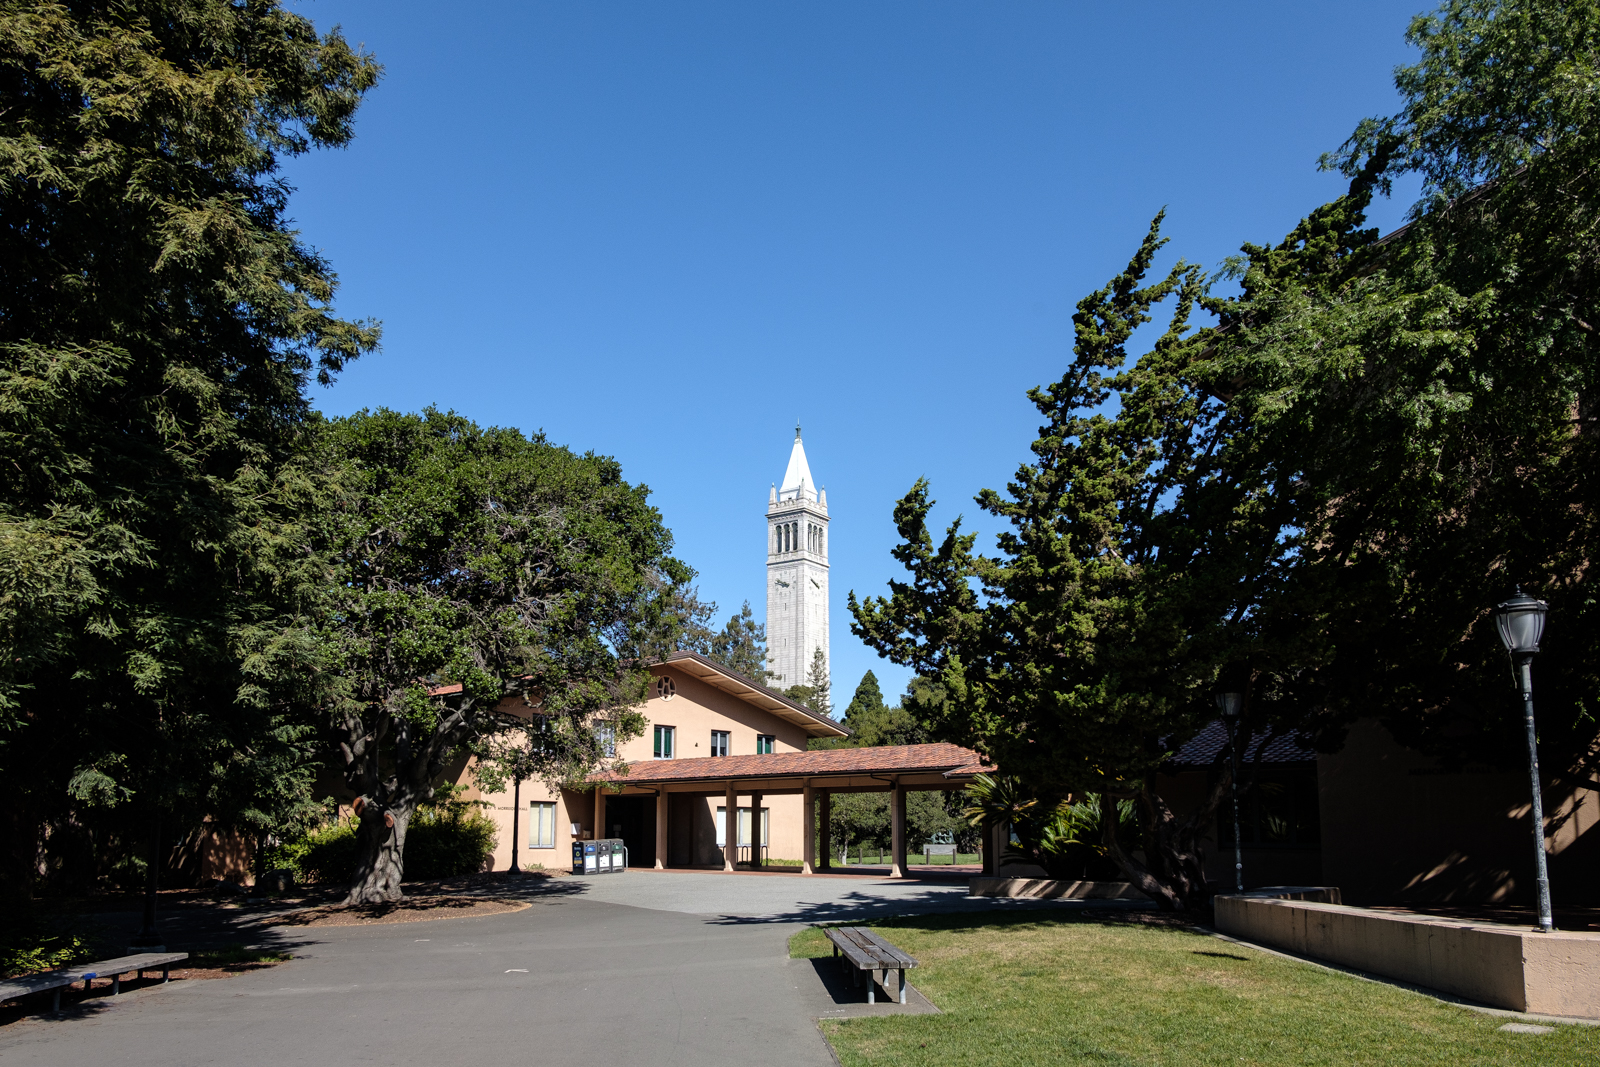 UC Berkeley campanile tower surrounded by trees